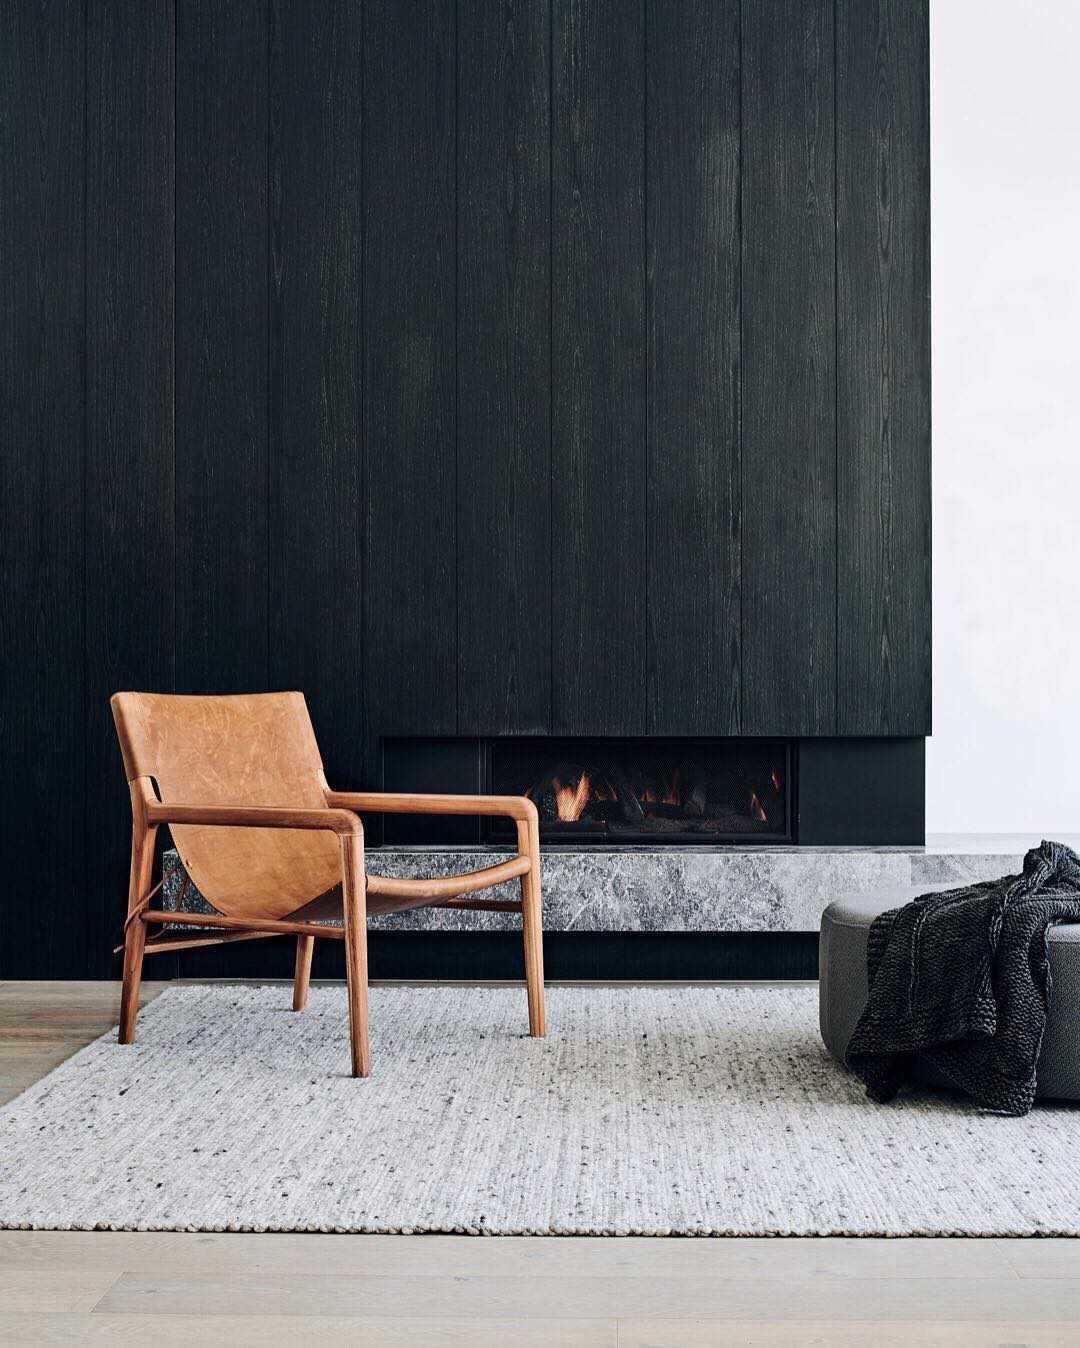 Wood panelling stained black